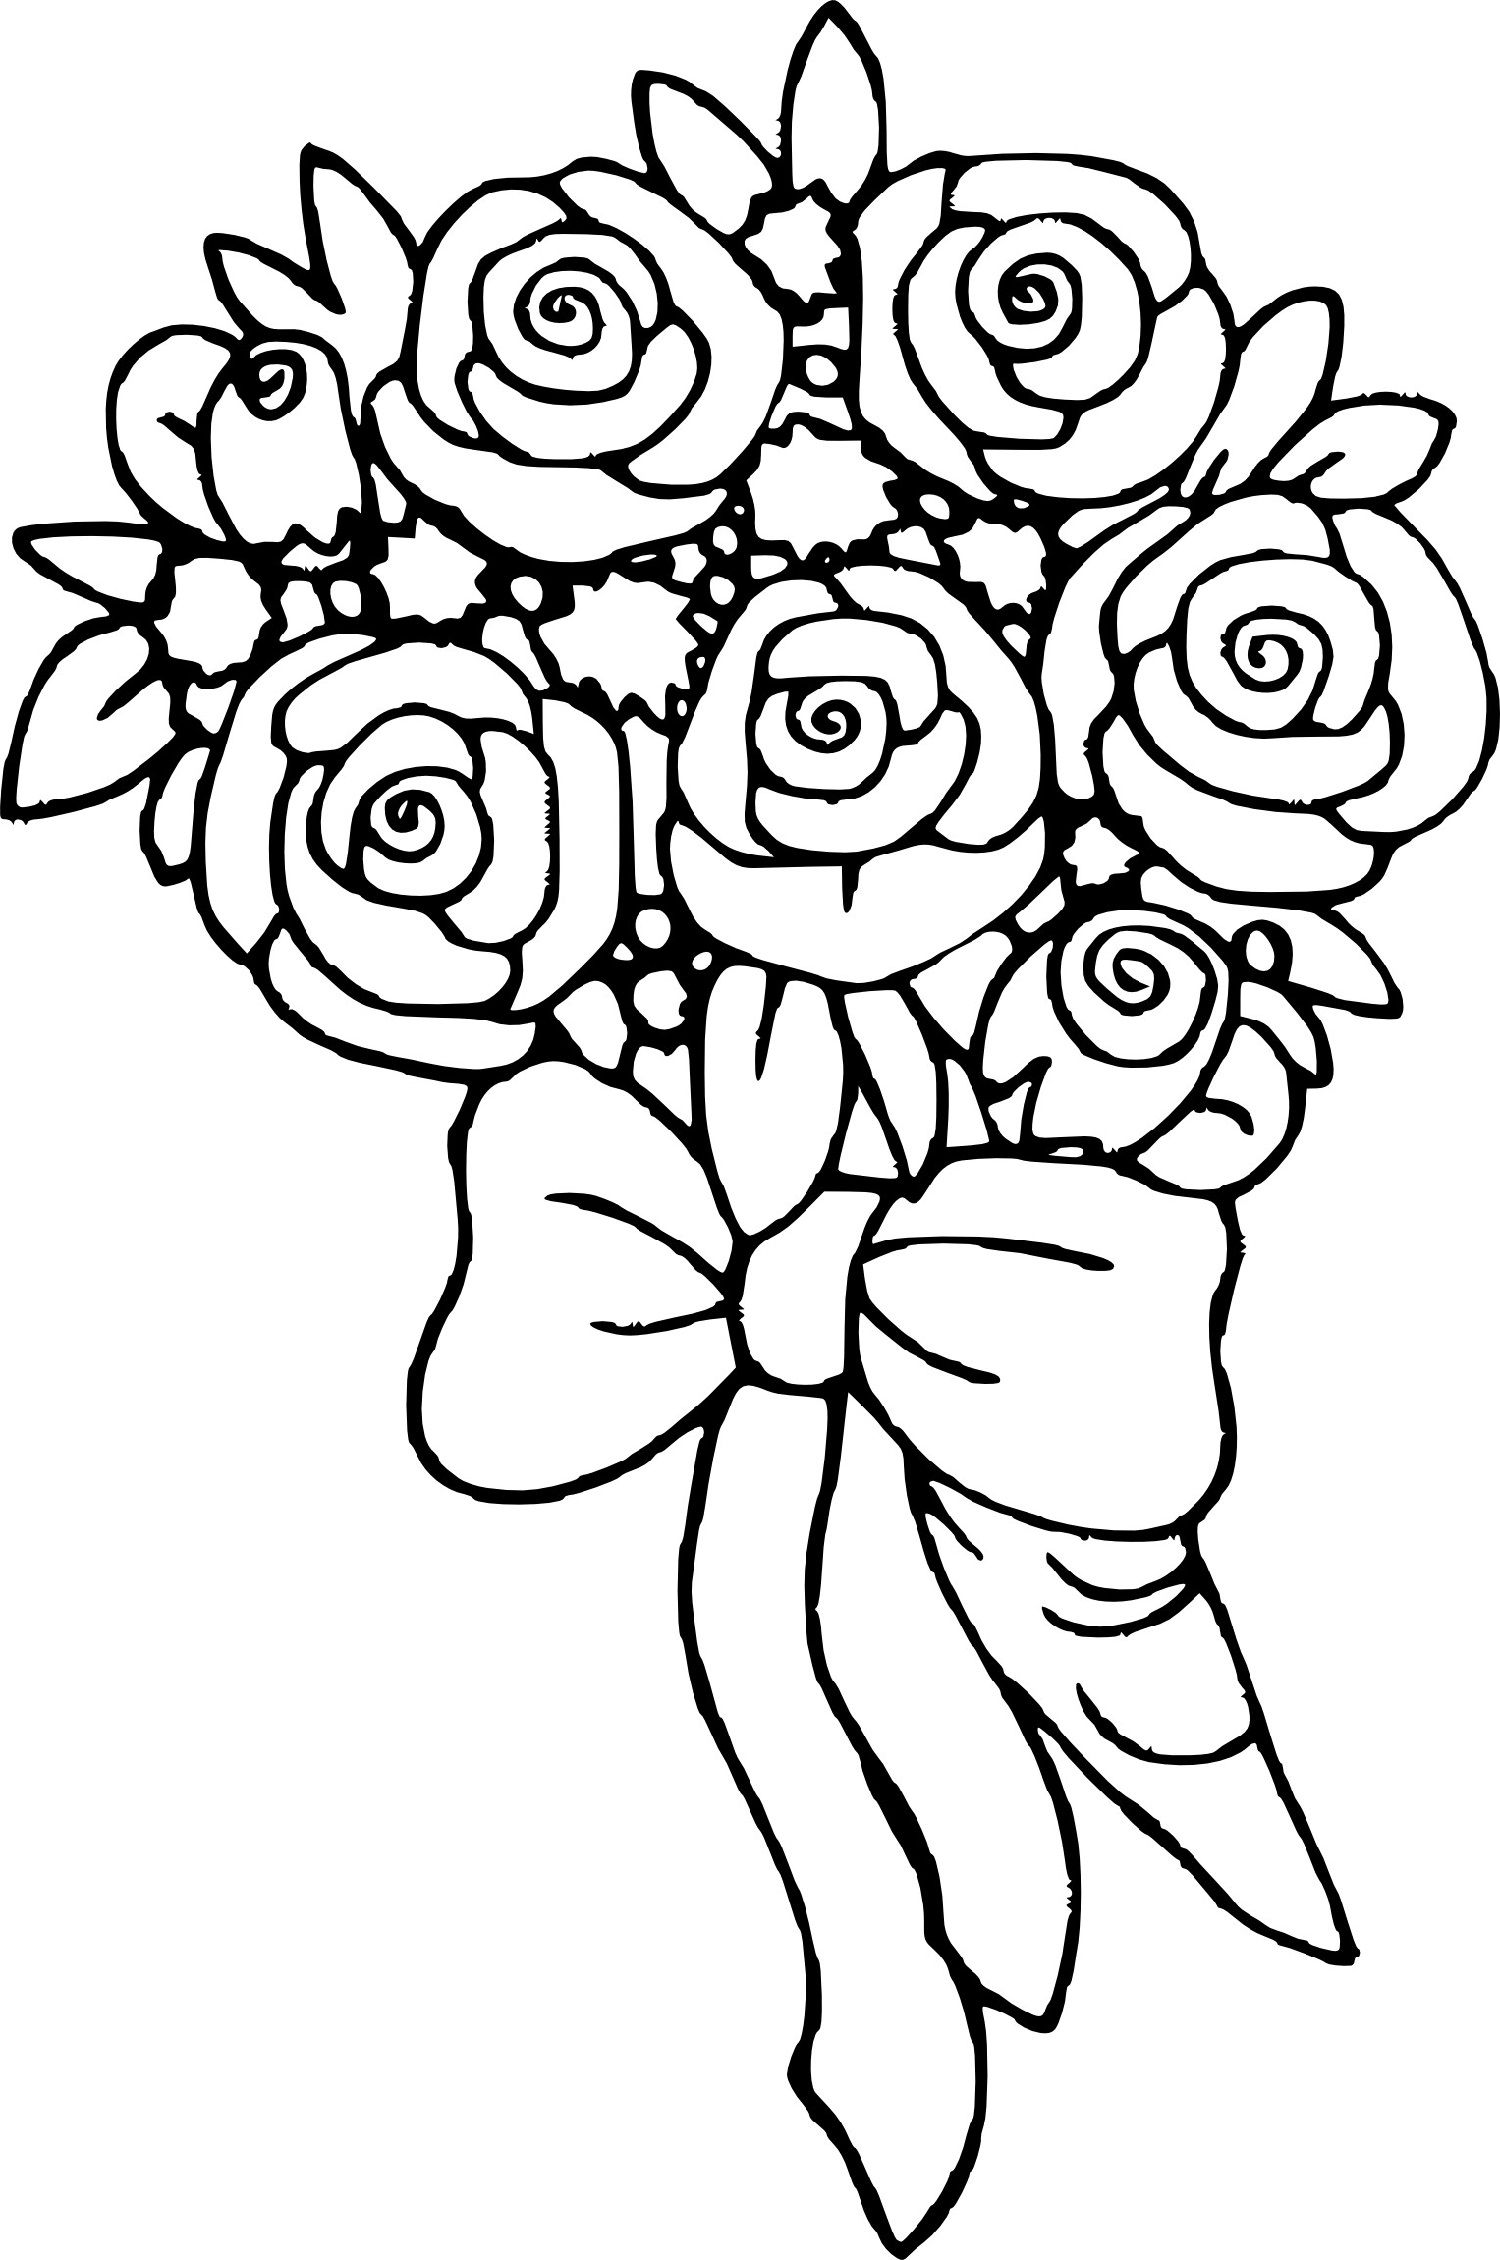 rose flower coloring pictures rose flower coloring page coloring pictures flower rose